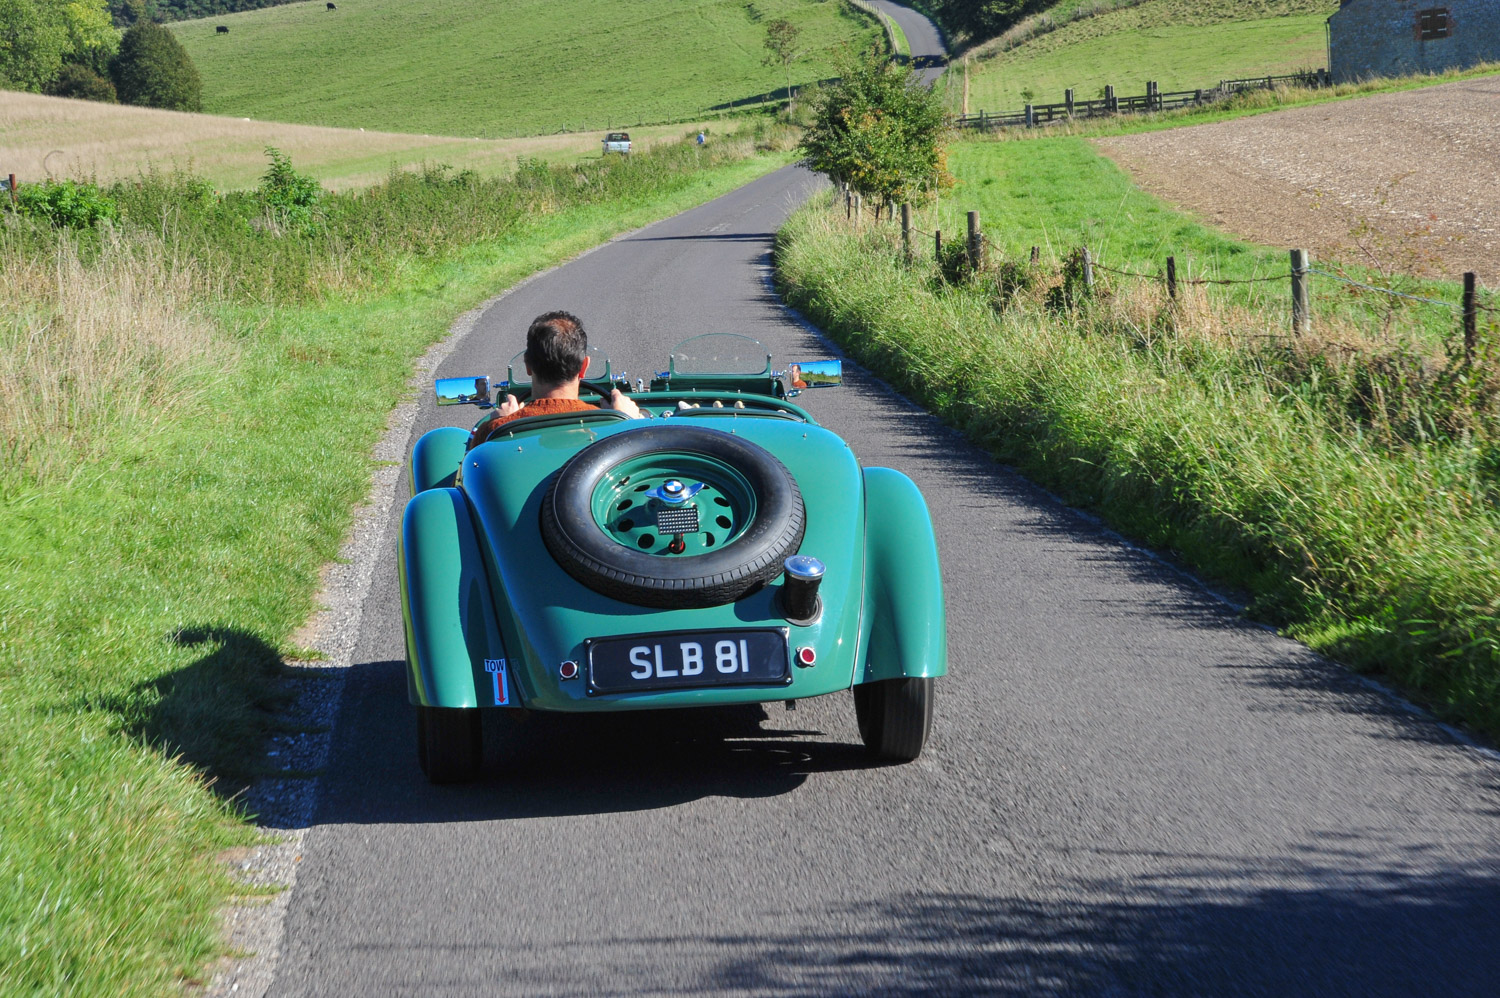 BMW 328 on road right hand bend